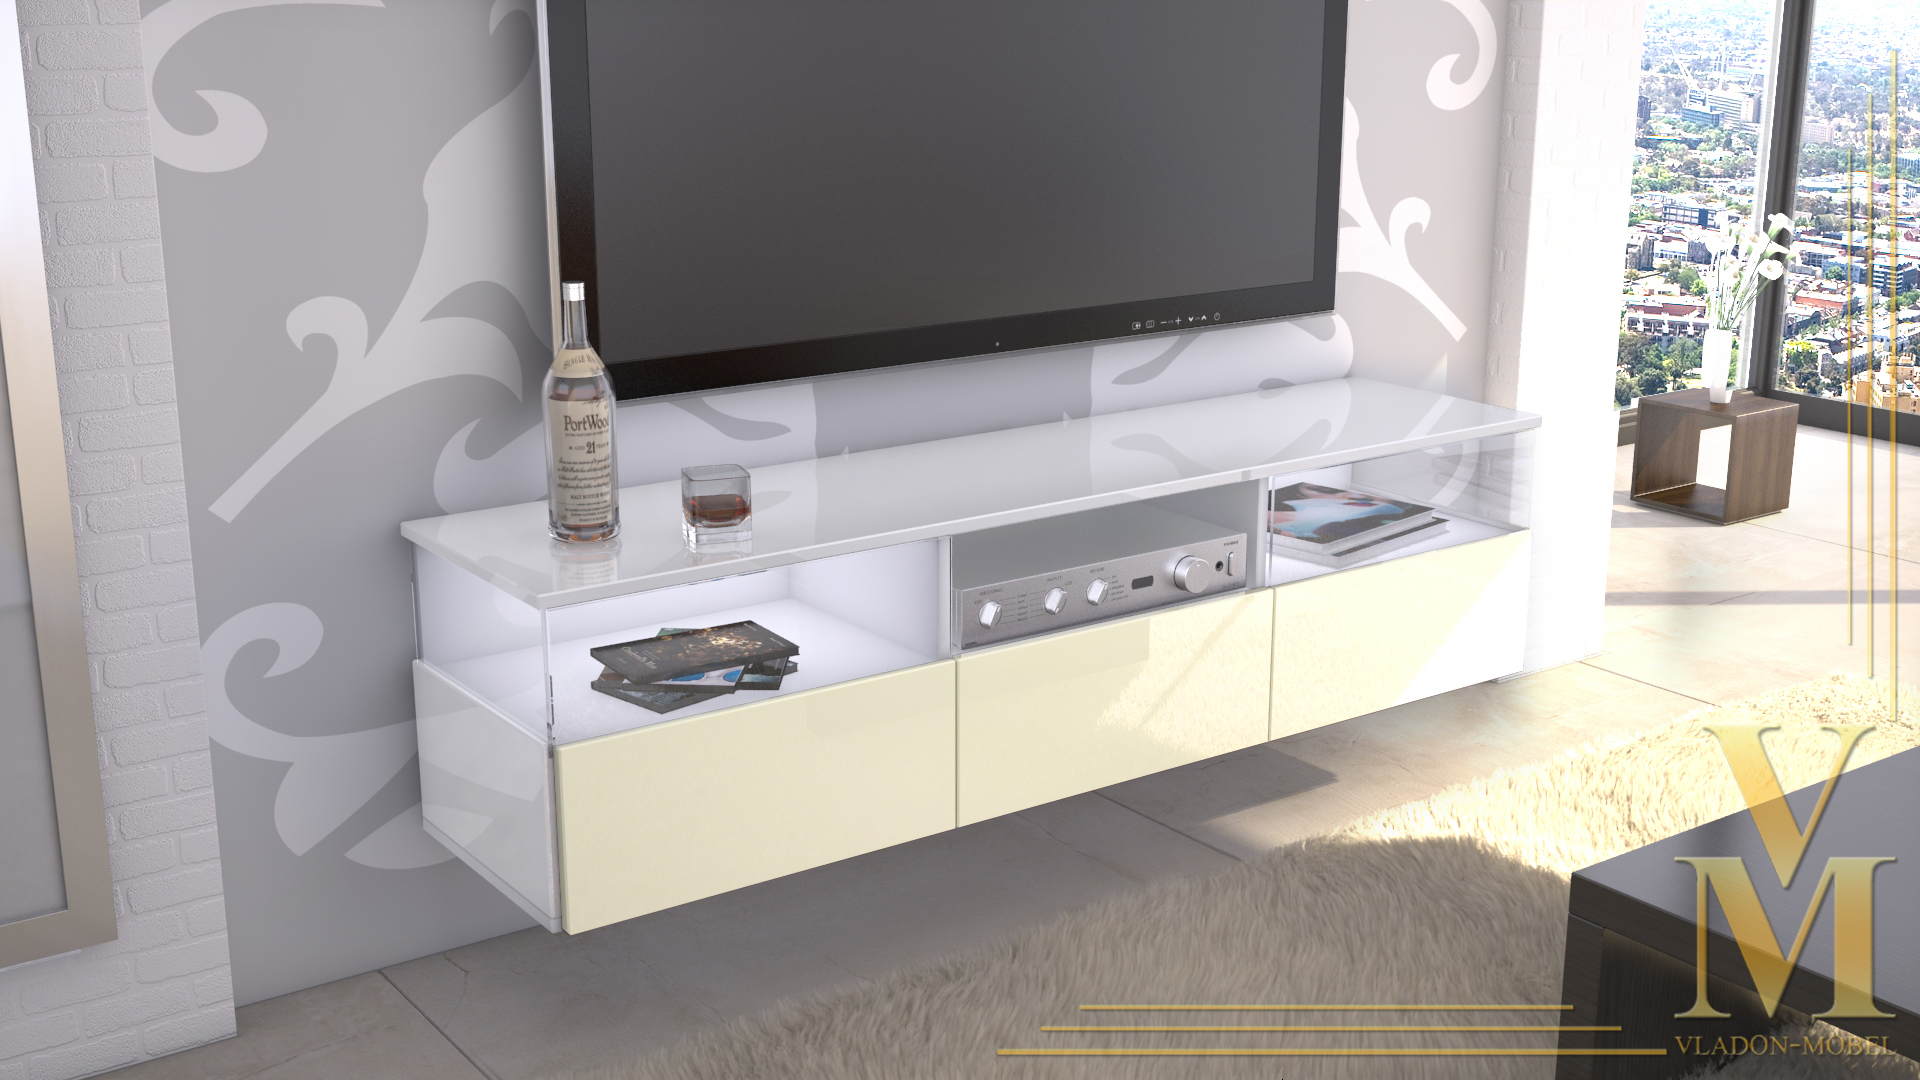 lowboard kommode tv board unterschrank almeria wei hochglanz naturt ne ebay. Black Bedroom Furniture Sets. Home Design Ideas